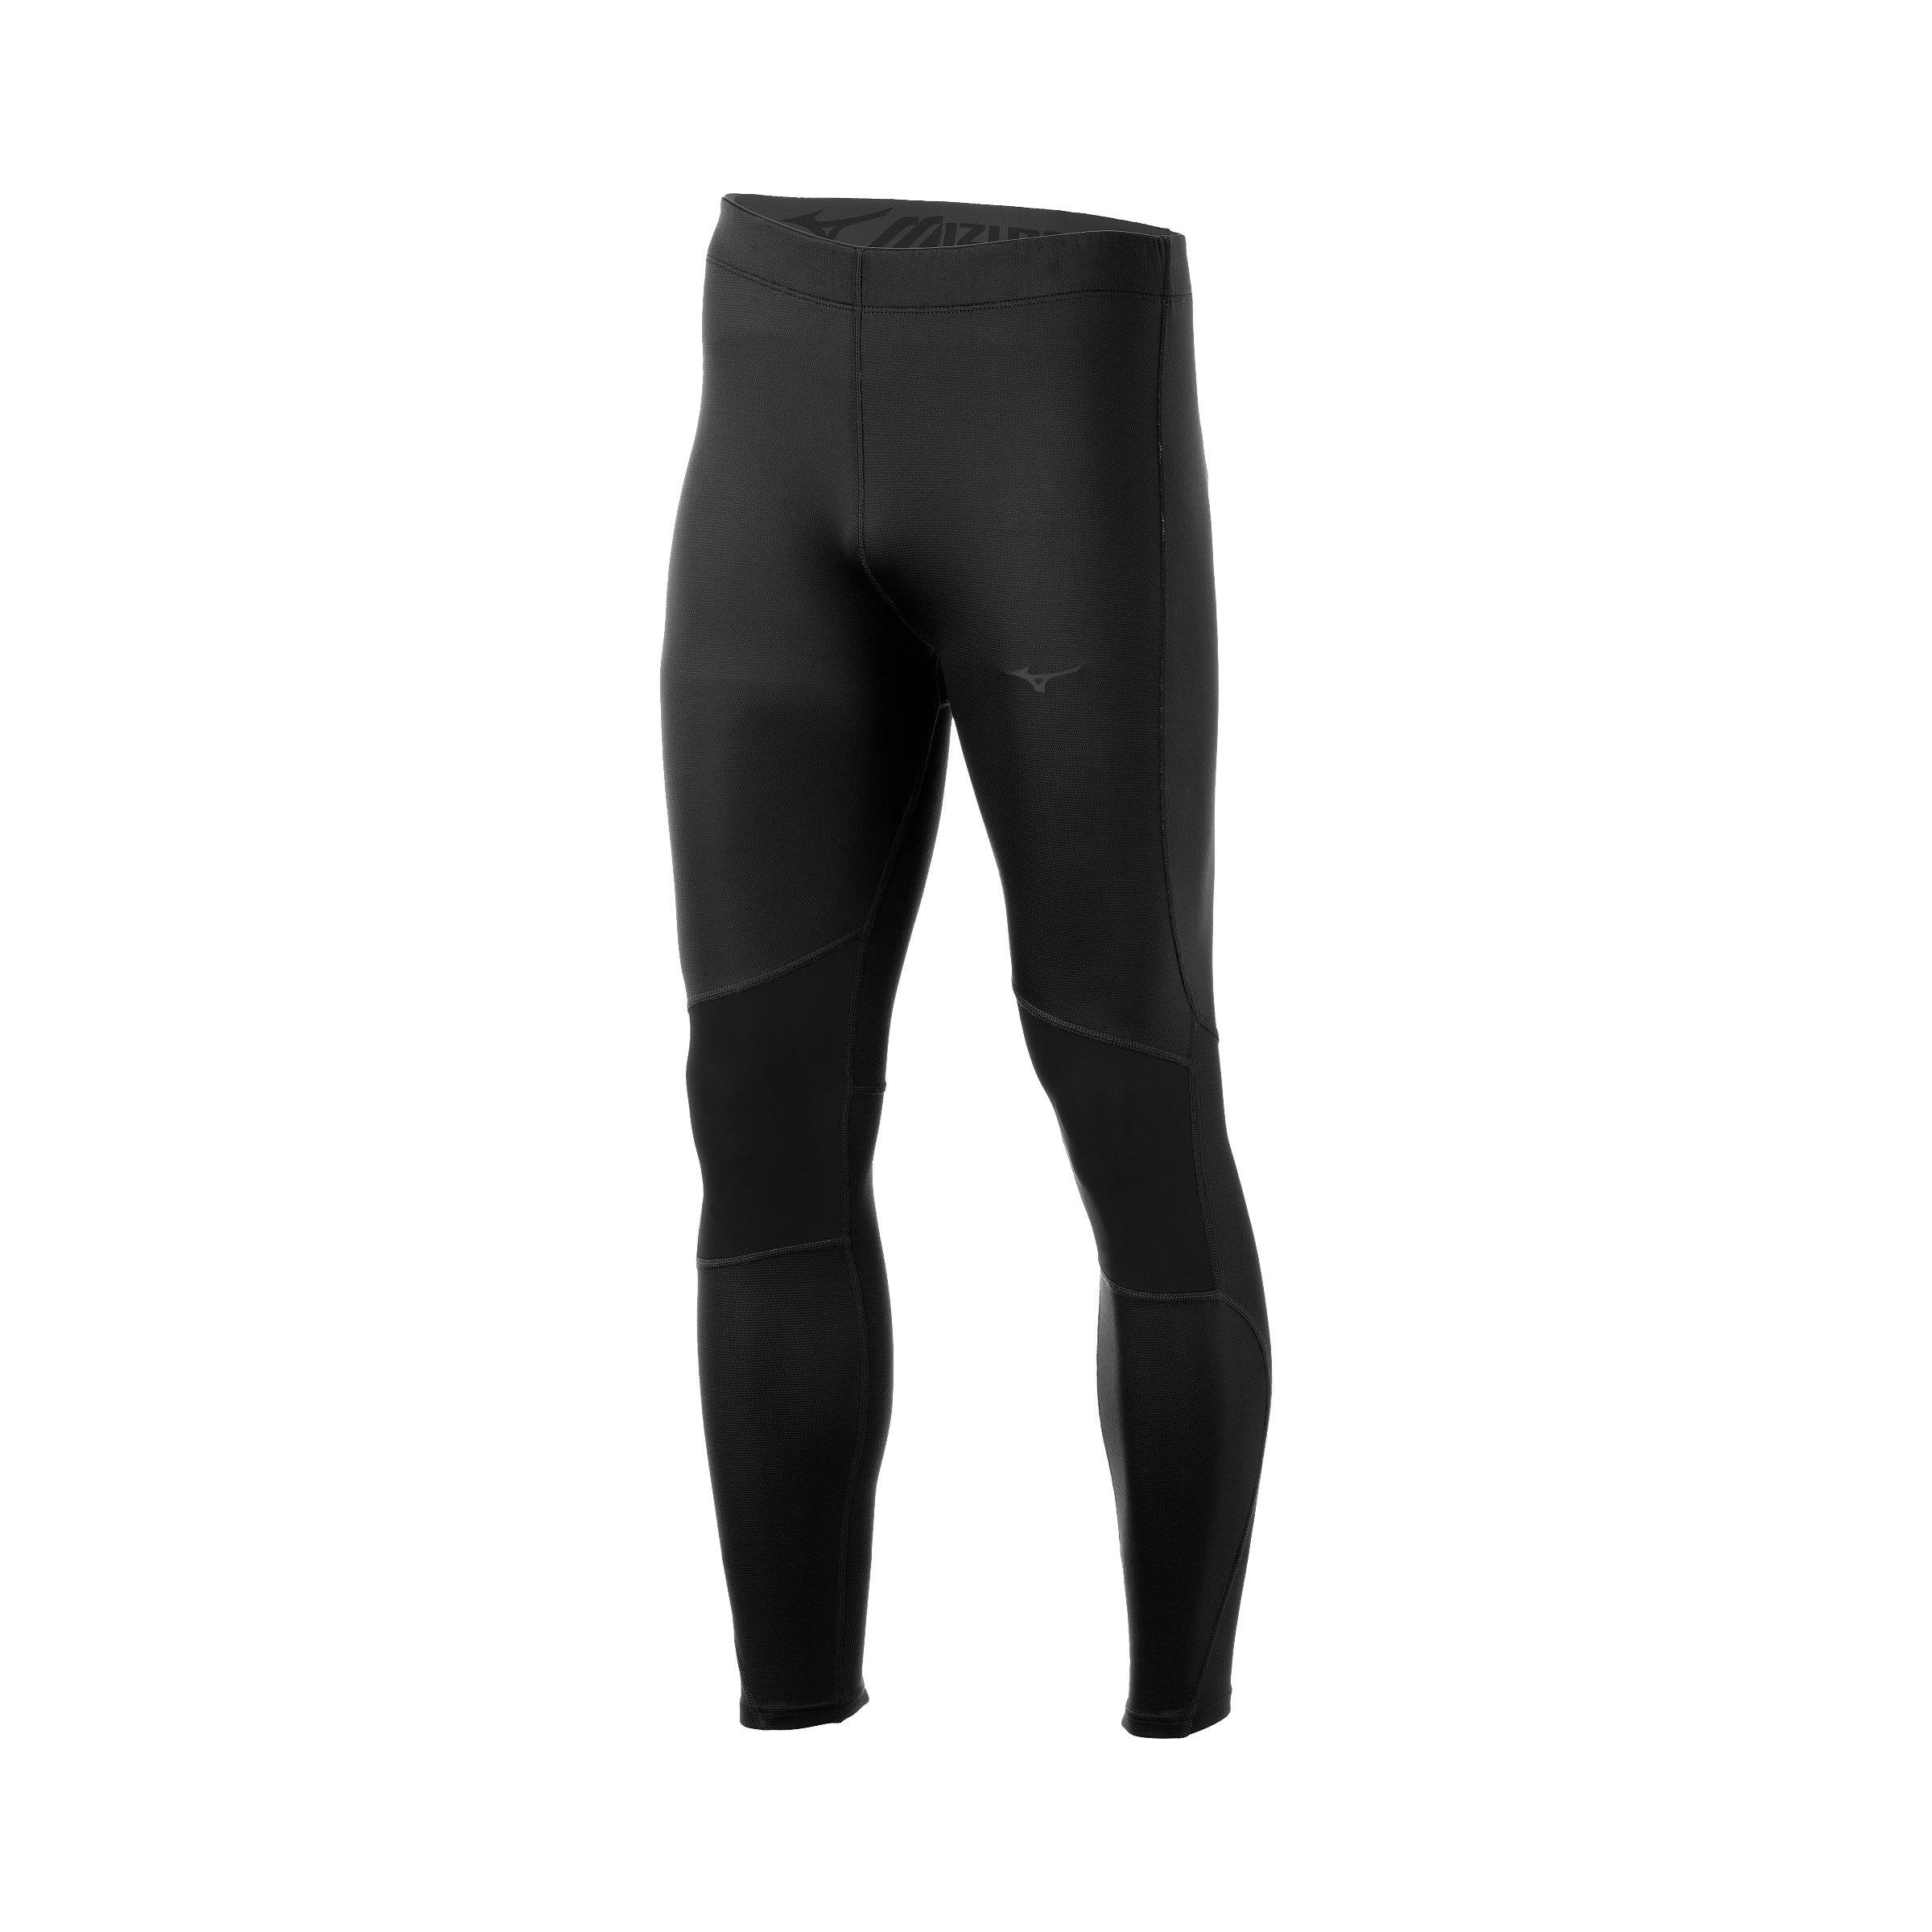 Mizuno Men's Breath Thermo Tight - Black, Medium